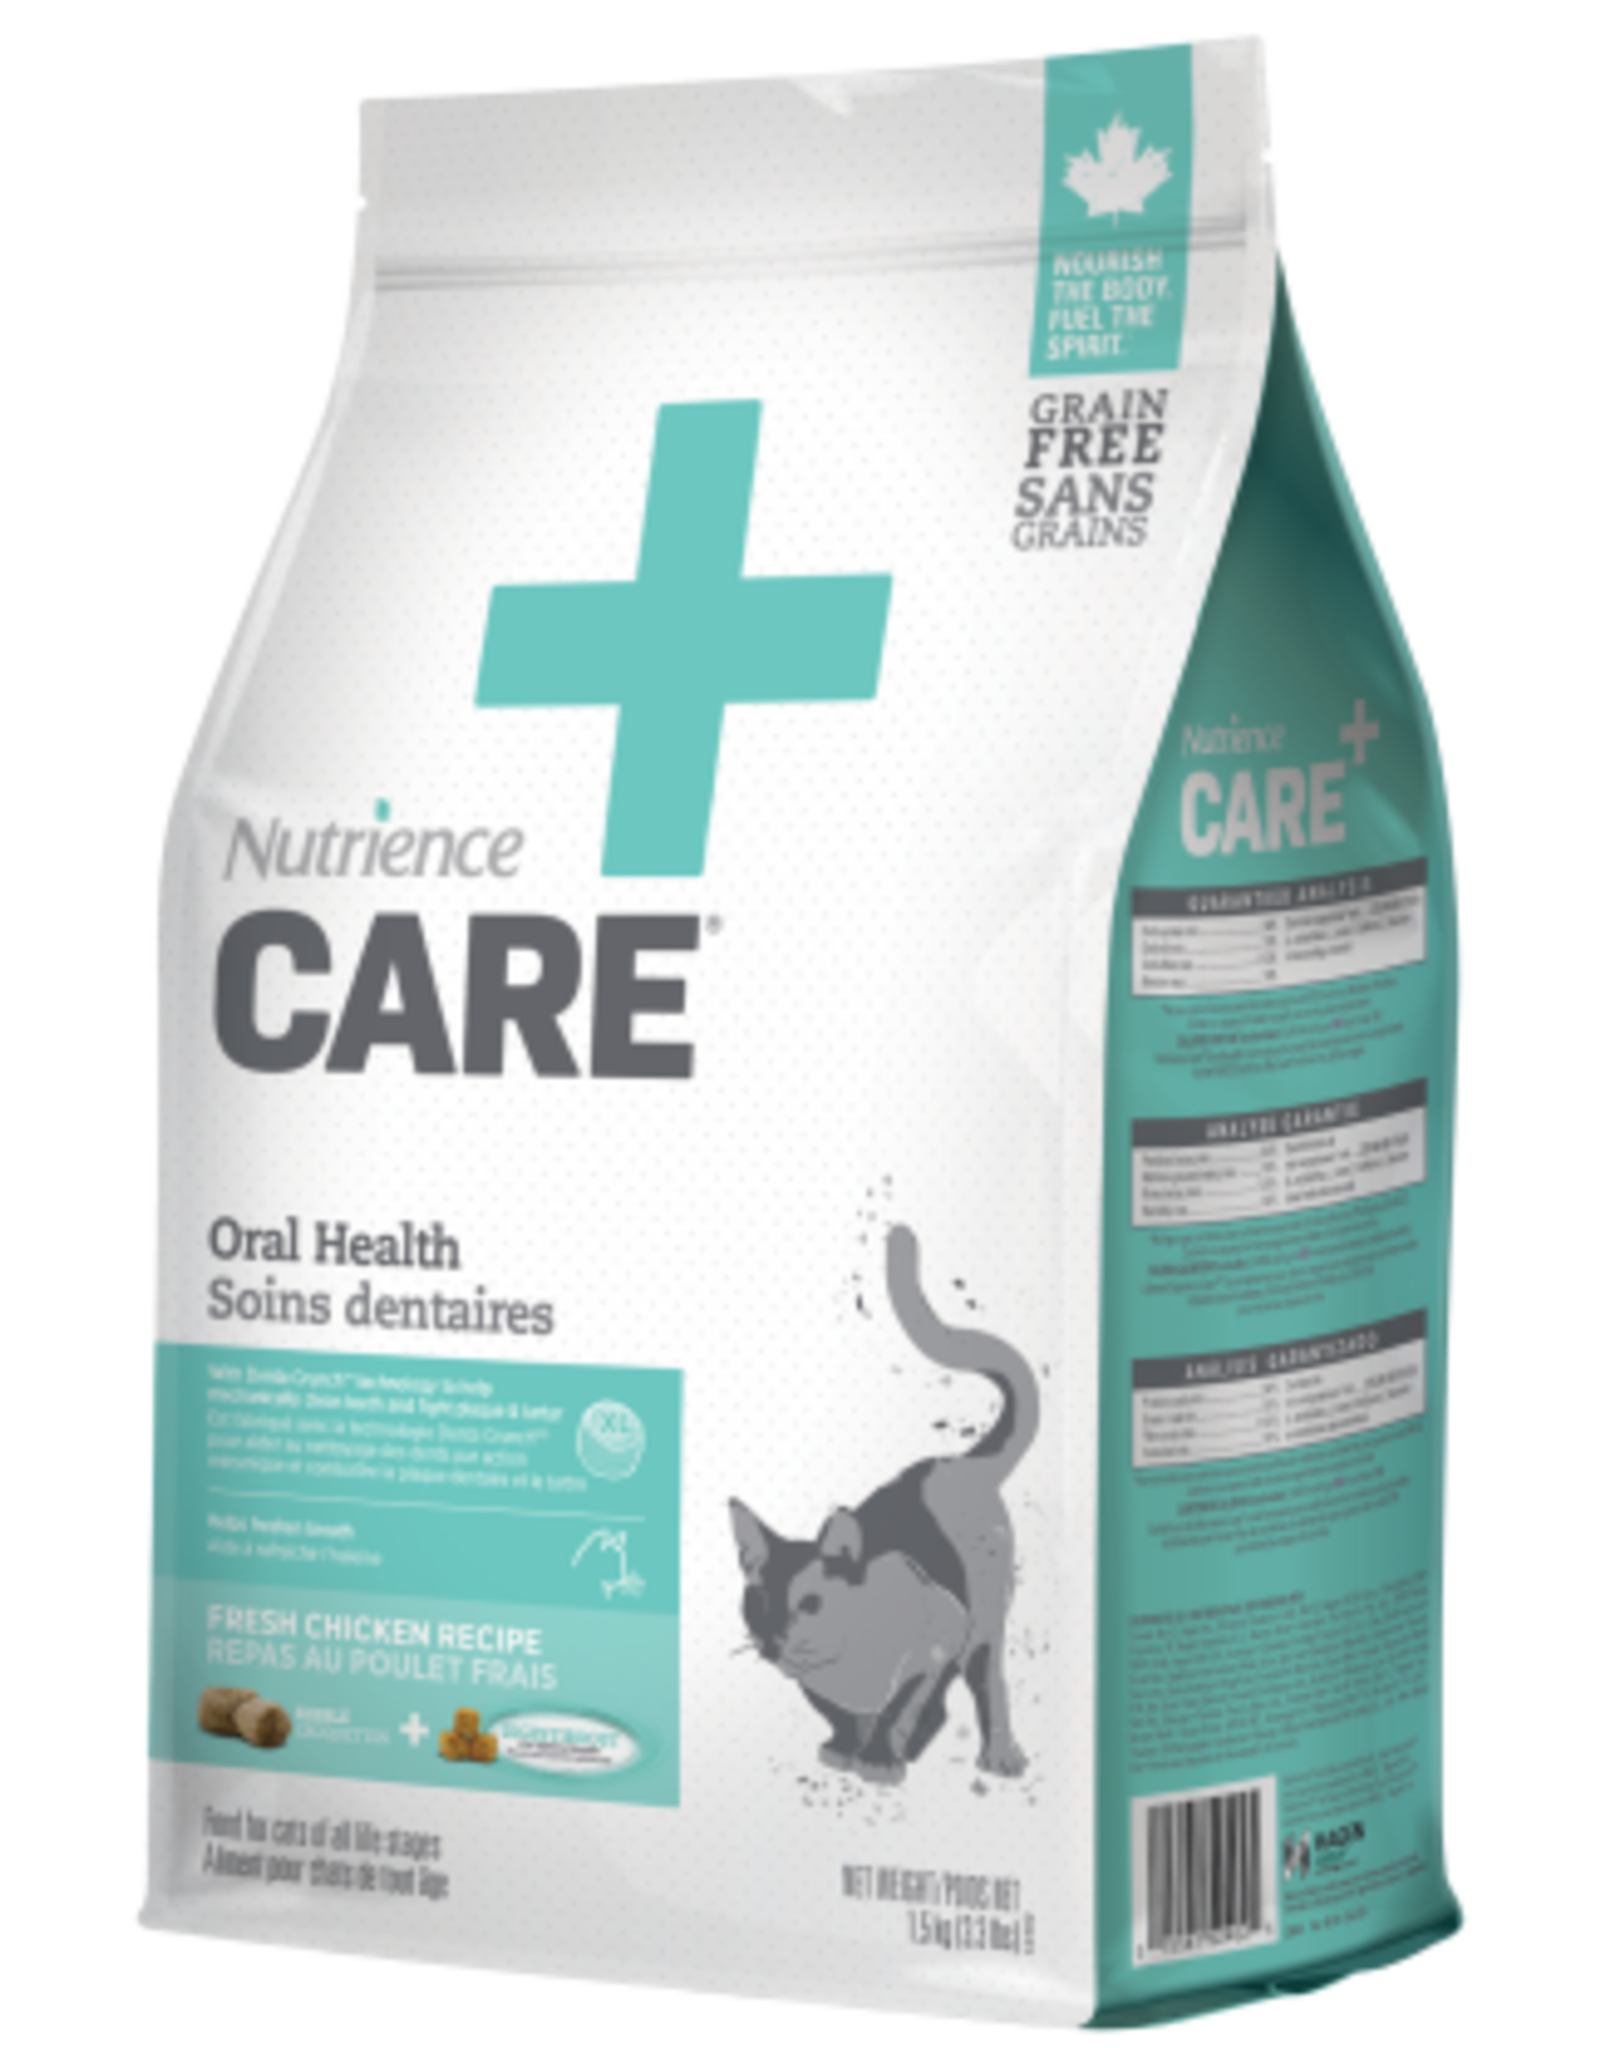 Nutrience Nutrience Care Oral Health 3.8kg